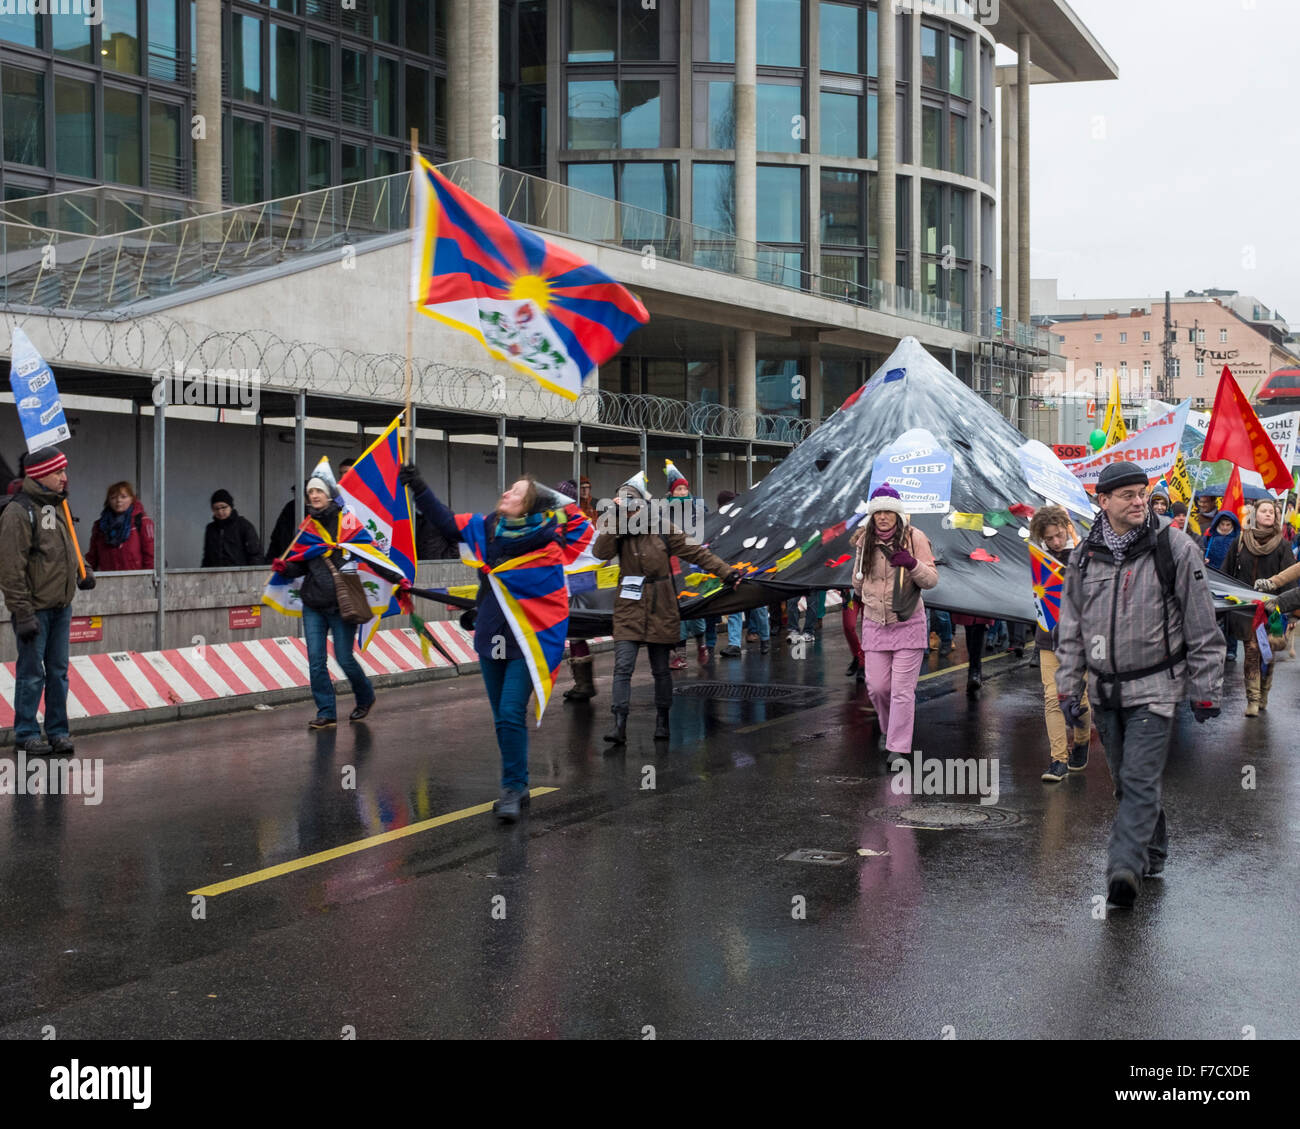 Berlin, Germany. 29th November, 2015. Climate Change March in Berlin, Germany. Credit:  Eden Breitz/Alamy Live News - Stock Image